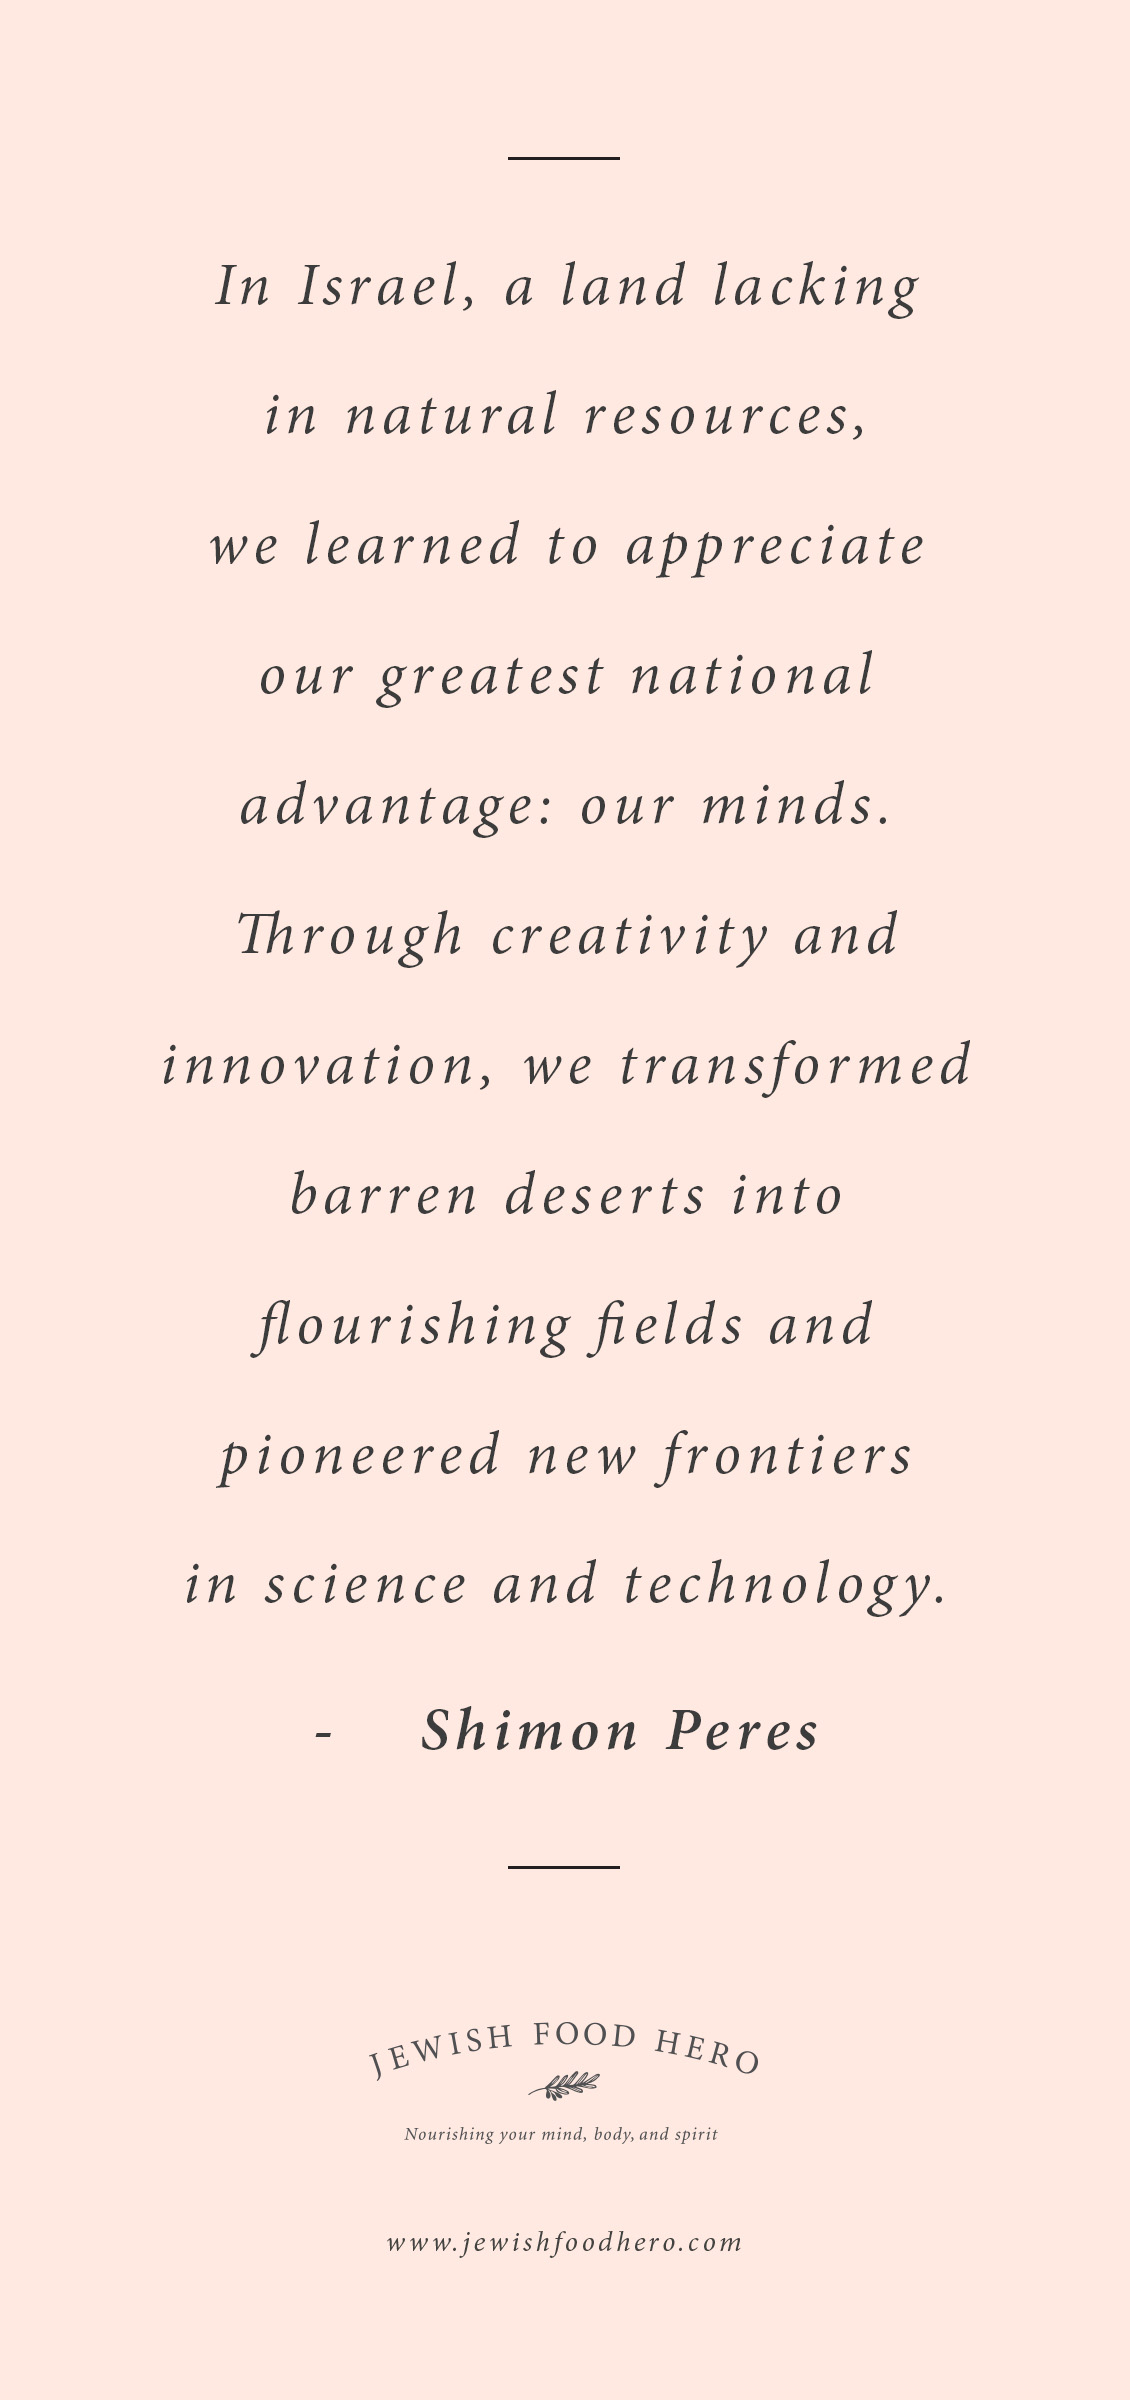 Shimon Peres quotes, Israel quotes to inspire